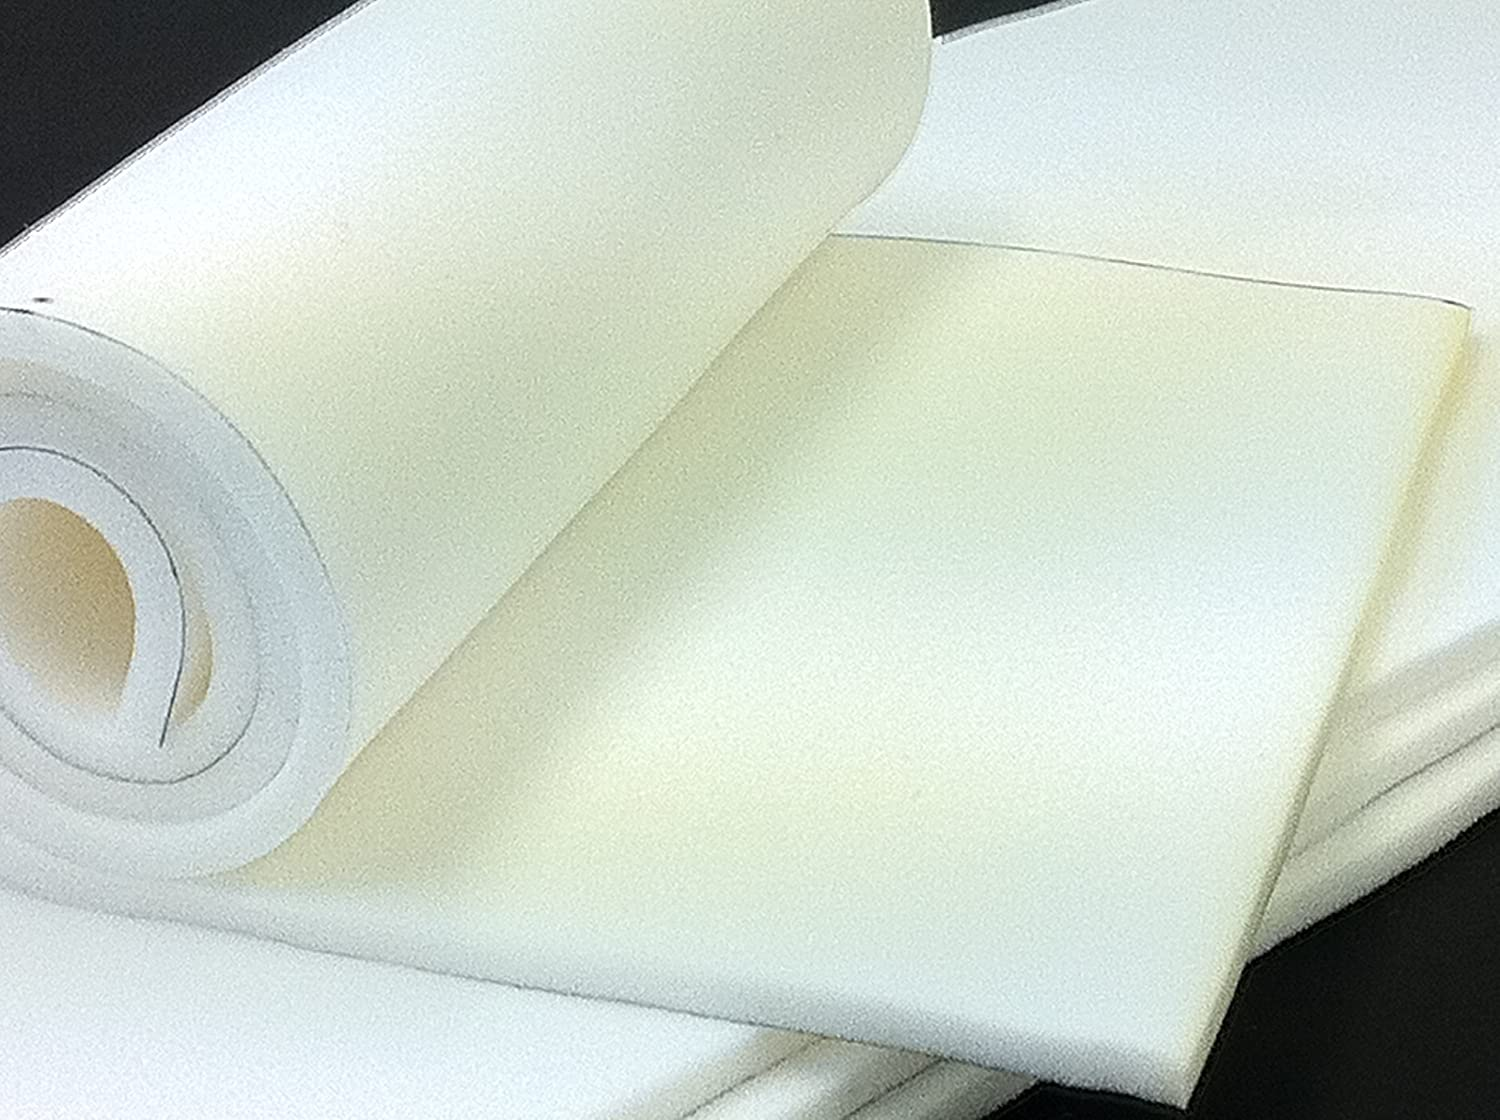 IRONING BOARD COVERS,Replacement Foam,Extra thick (small size) 90cmx35cmx1.2cm made with p33 foam